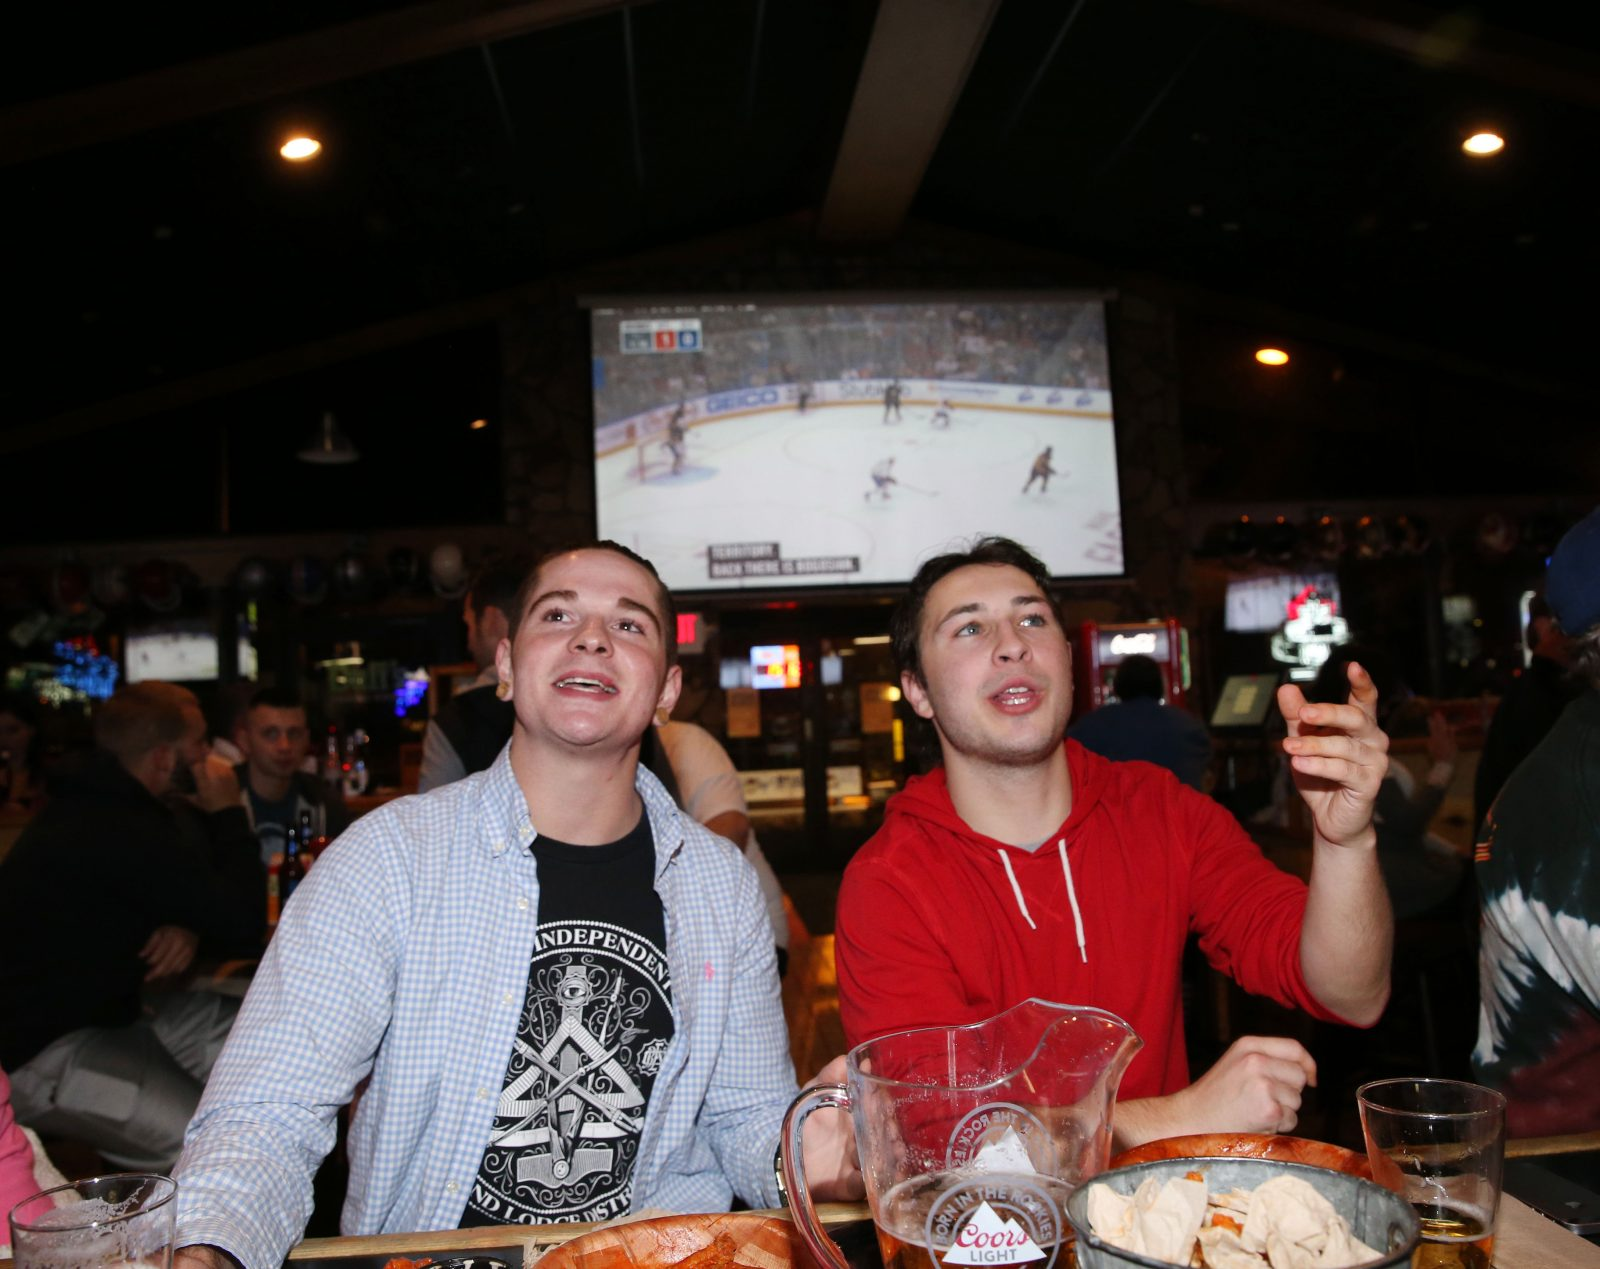 Collin Abbott, left, and Graydon Olson, of Kenmore, catch a Sabres game in the viewer-friendly large bar area at Duff's in Orchard Park. (Sharon Cantillon/Buffalo News)